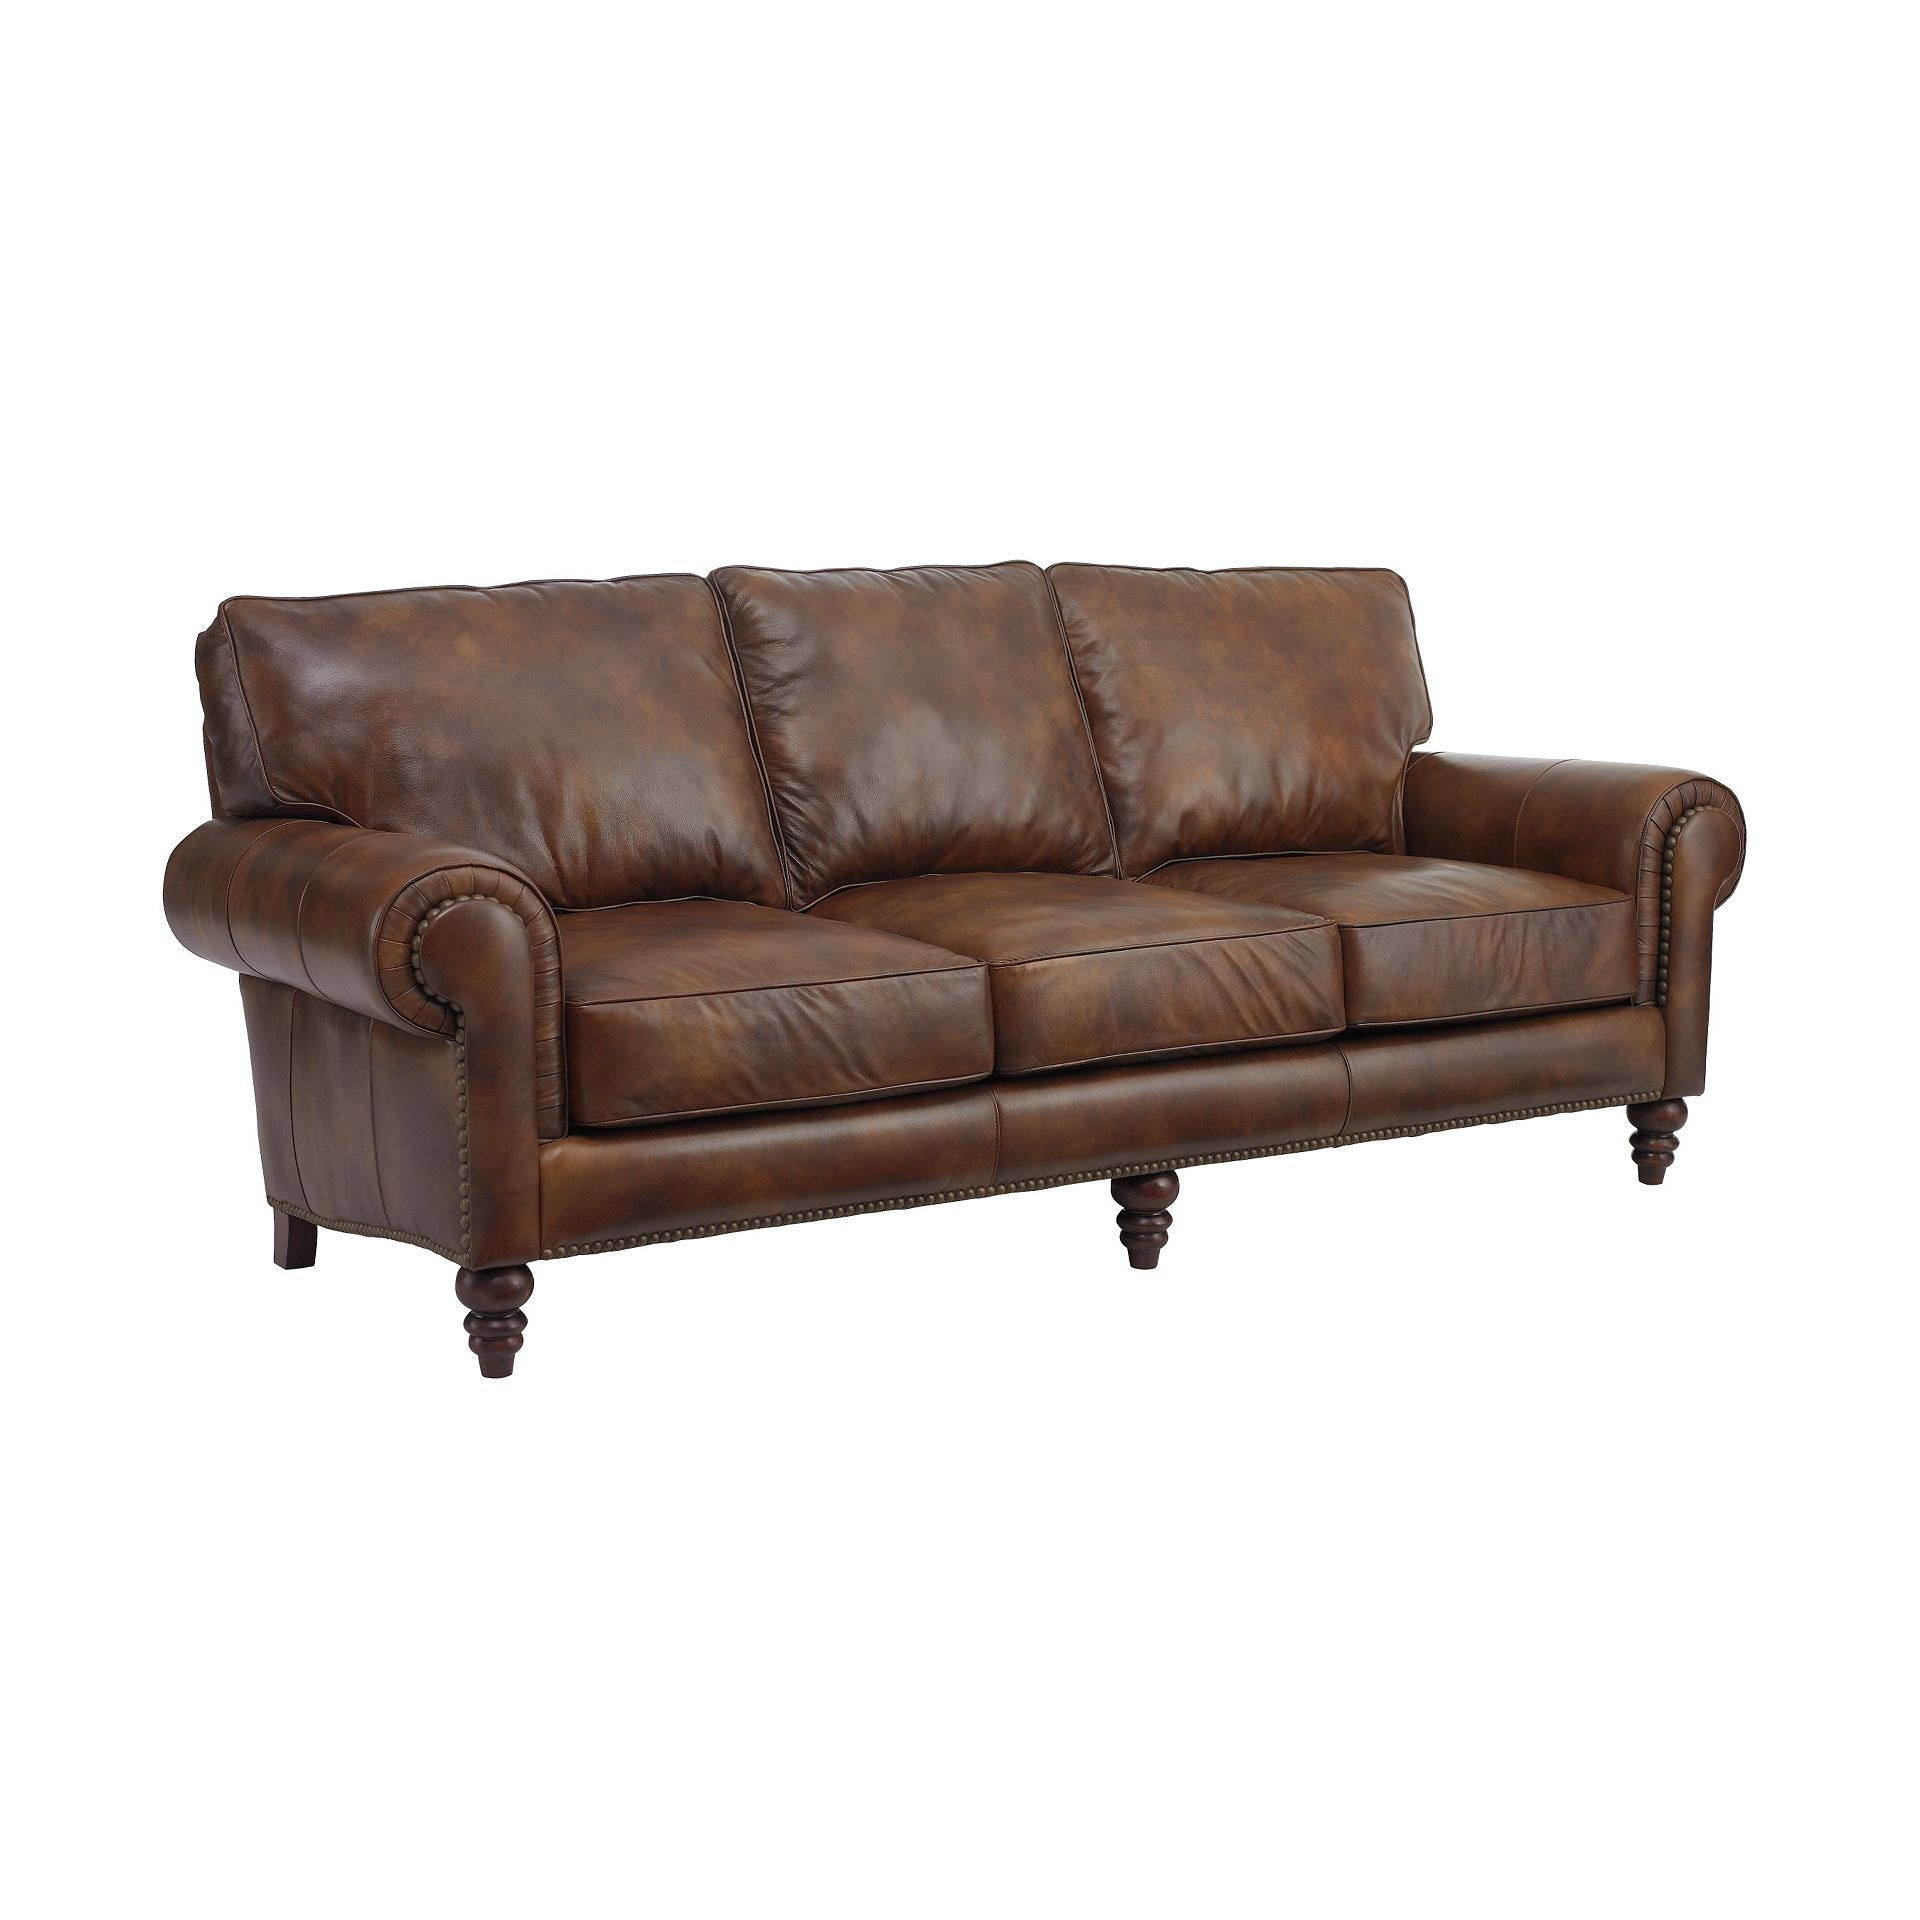 Henredon Furniture Henredon Leather Company Austin Sofa IL7742 C